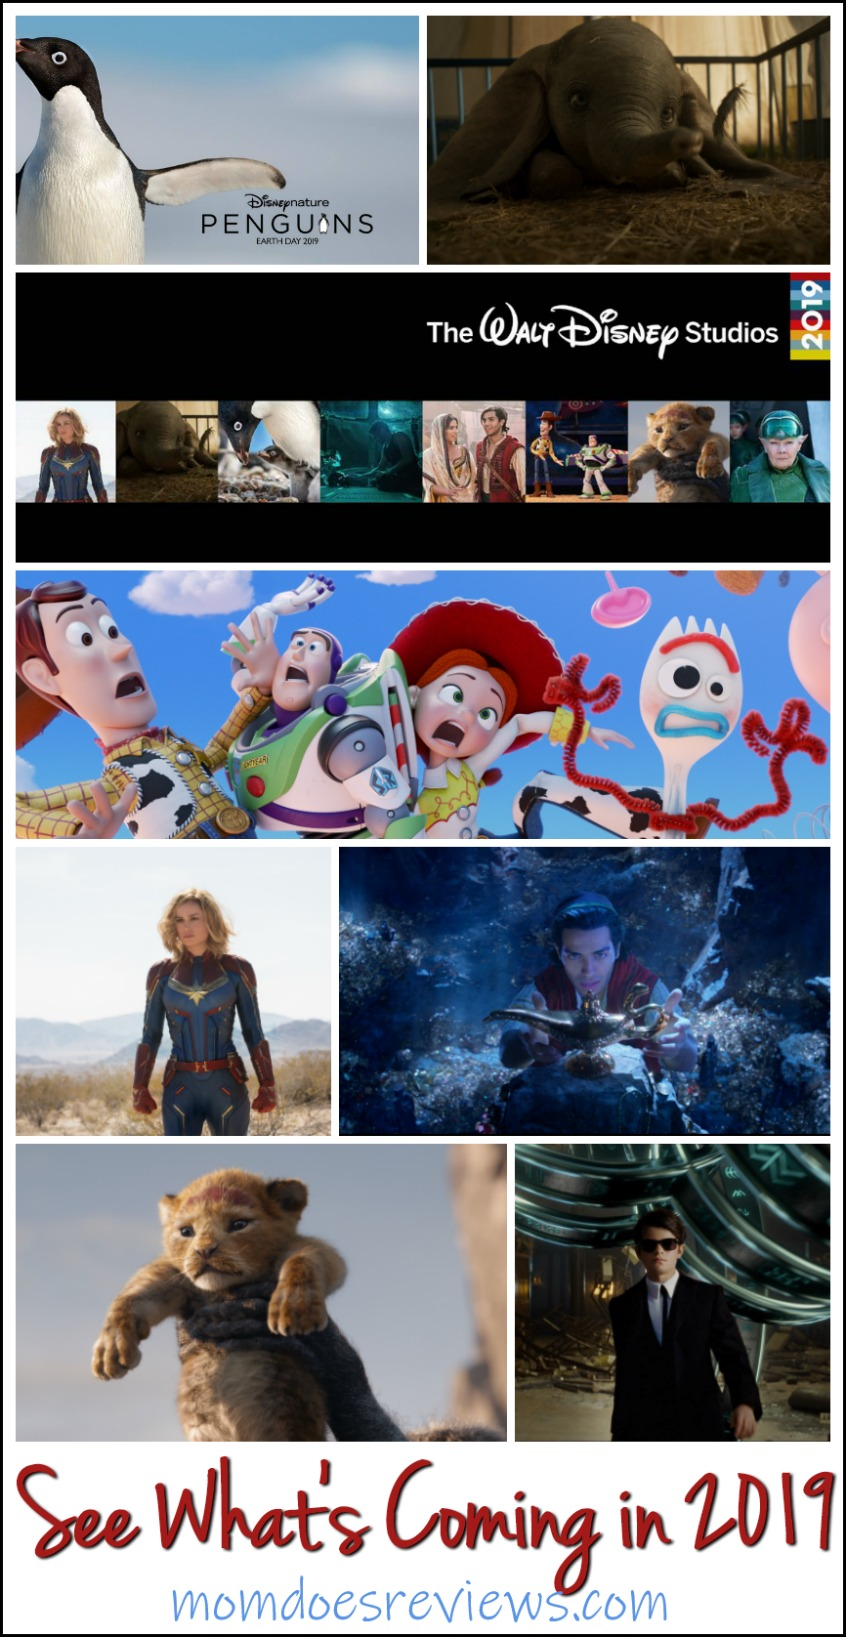 2019 Walt Disney Studios Motion Pictures Slate- See What's Coming! #Disney #Marvel #movies #2019movieslate